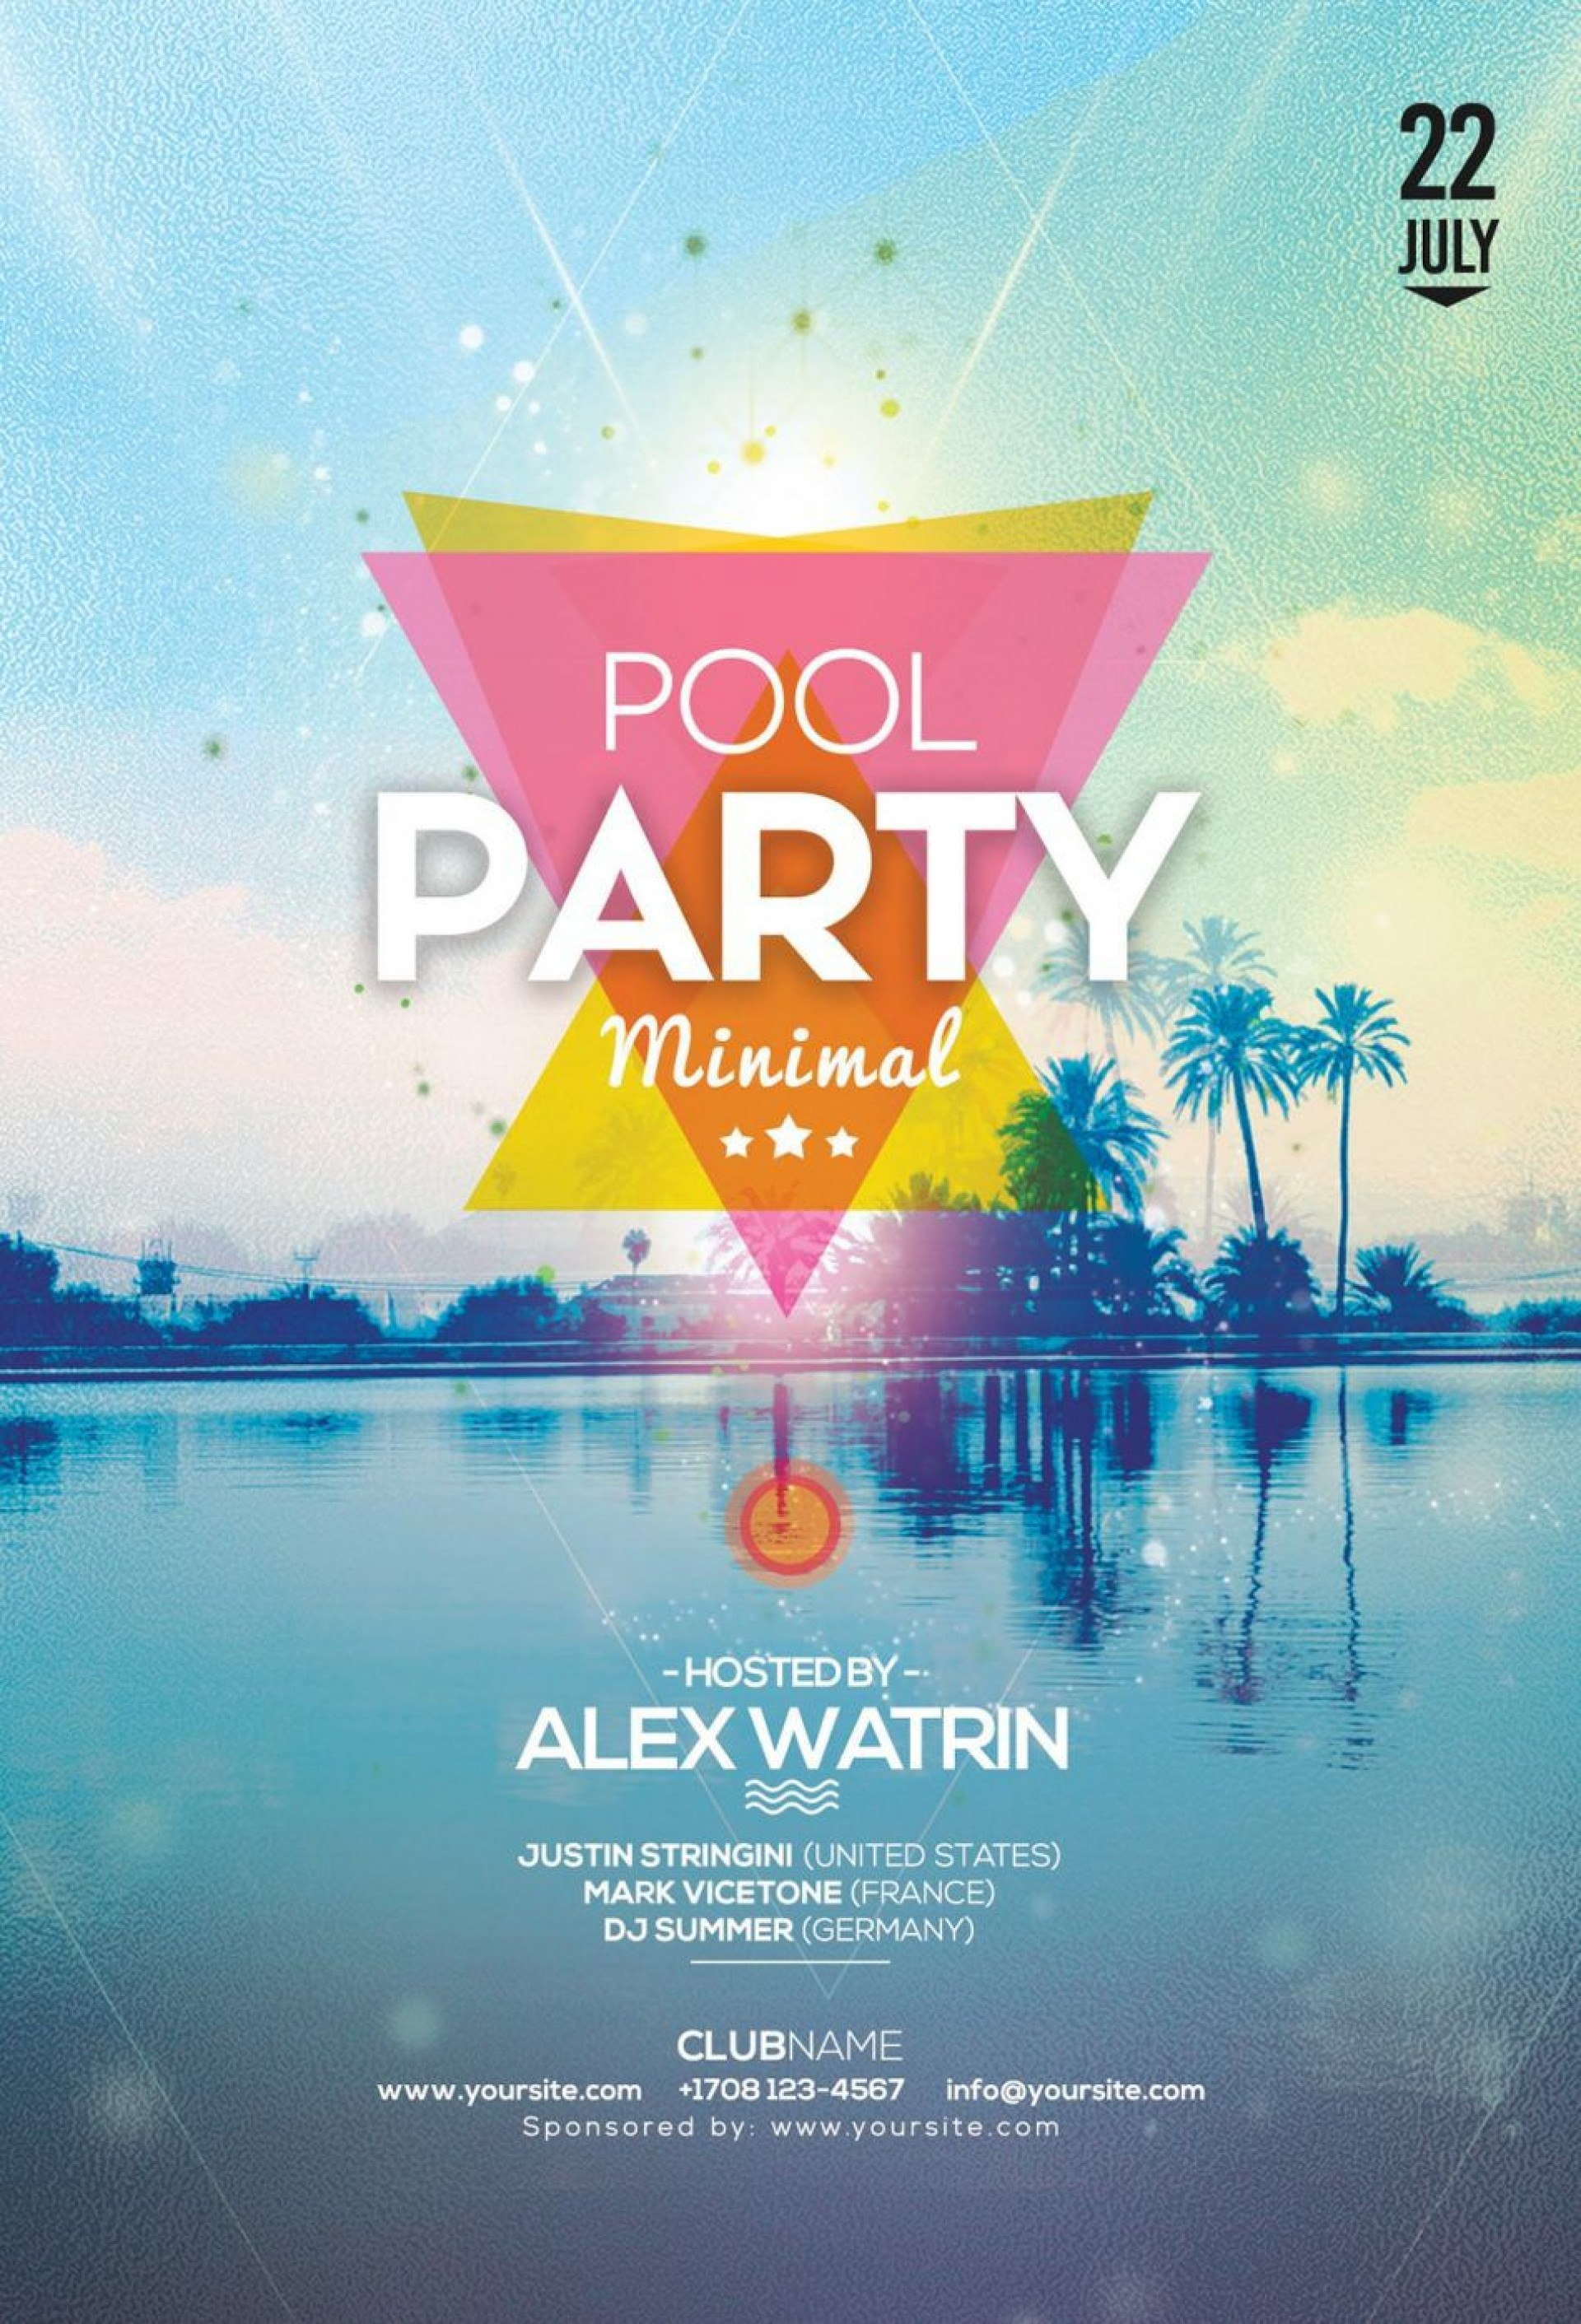 004 Awful Free Pool Party Flyer Template Psd Example  Photoshop1920